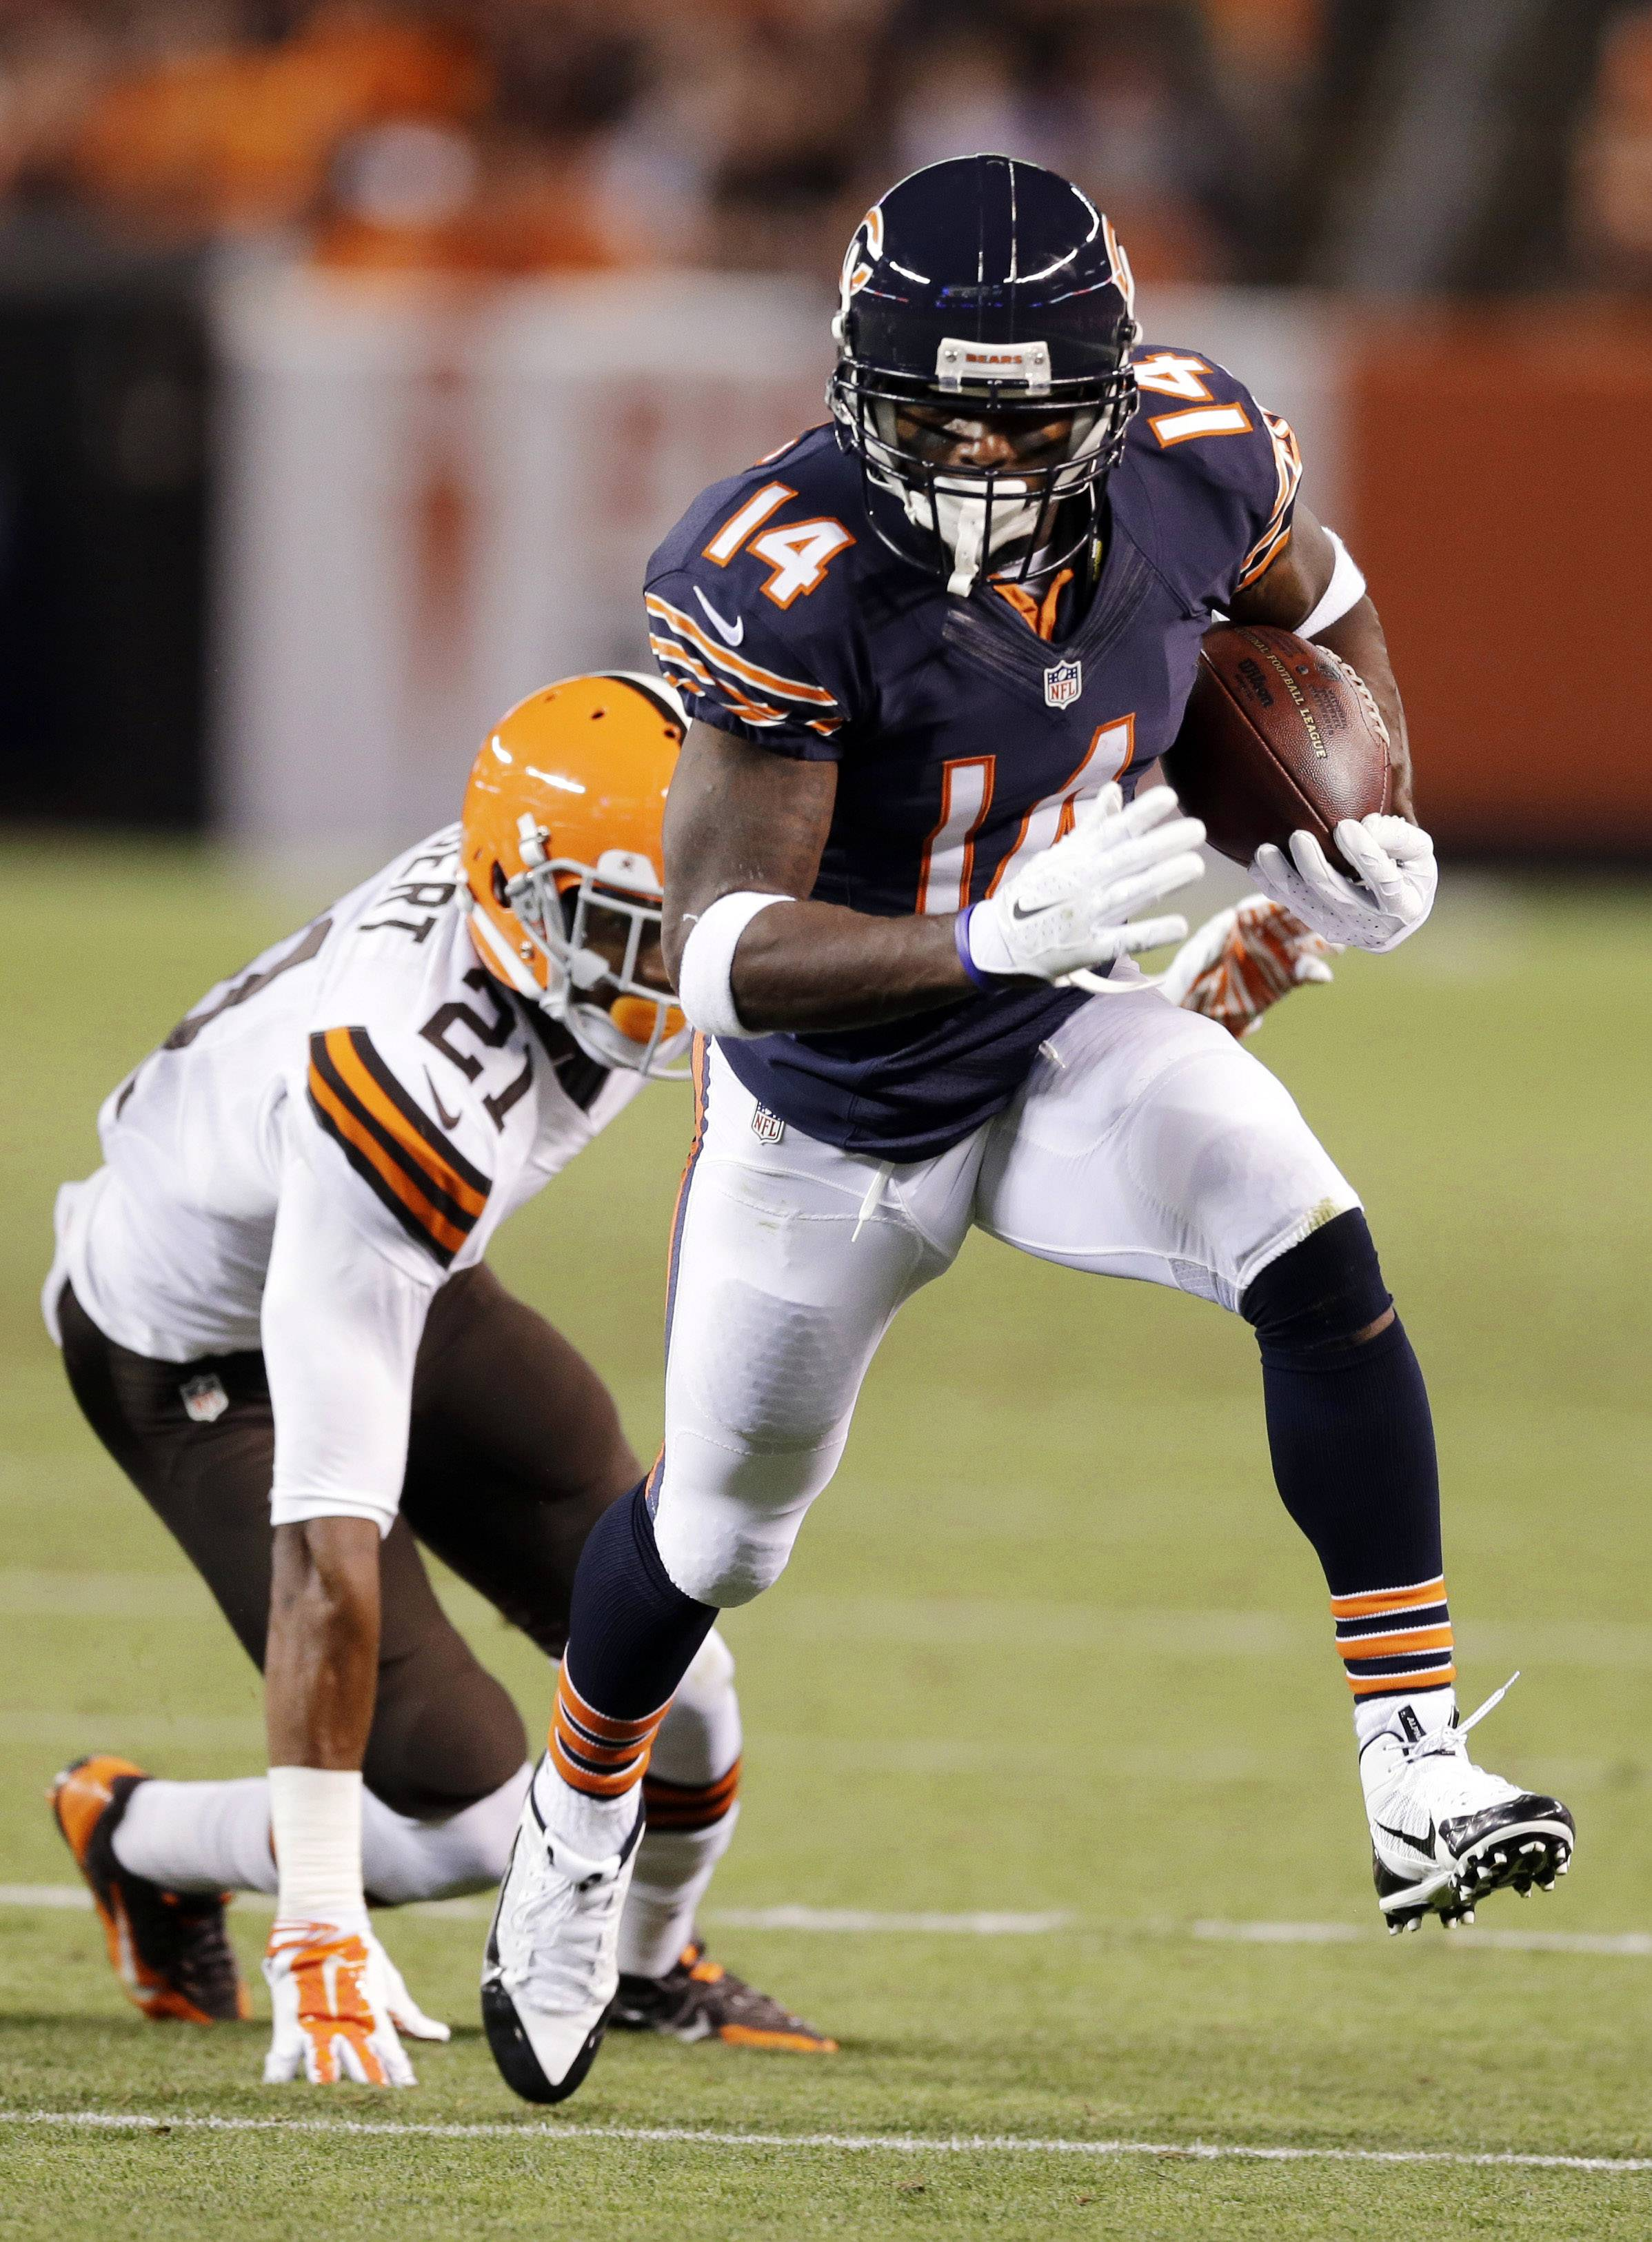 Bears wide receiver Santonio Holmes beats Cleveland Browns cornerback Justin Gilbert on a 32-yard touchdown reception in the second quarter of a preseason game in Cleveland.